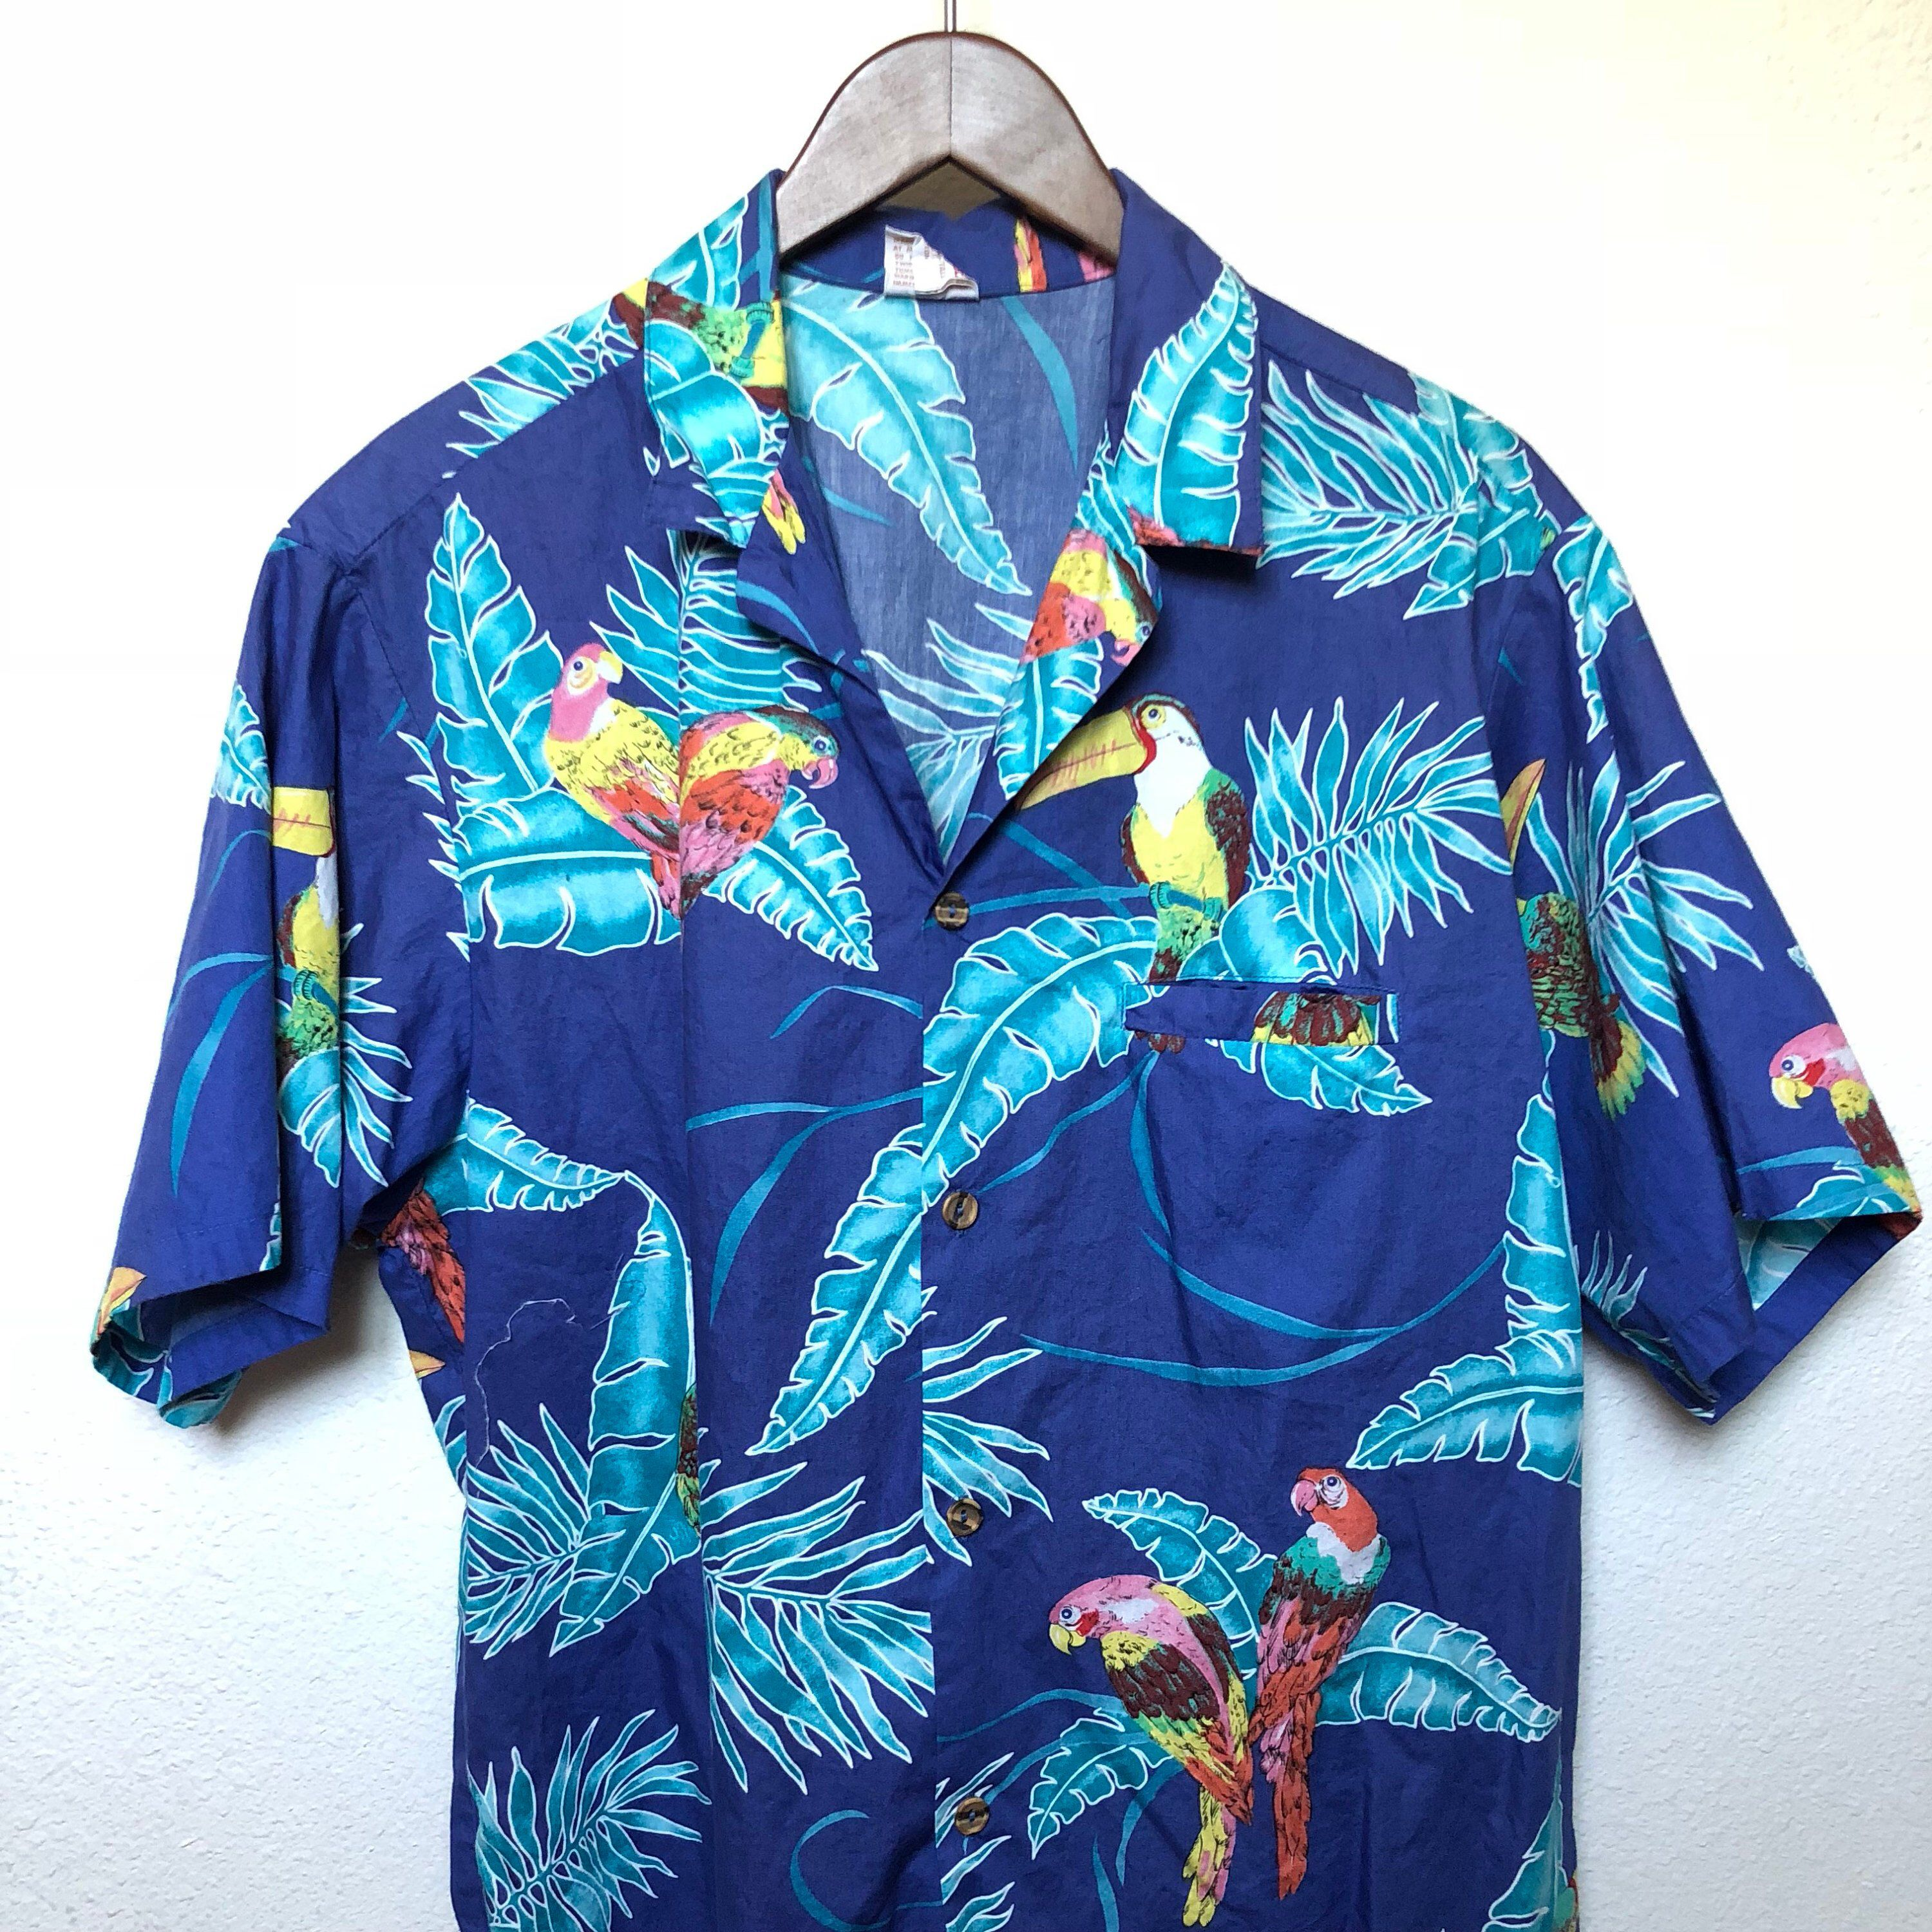 c5f765e1 ... #etsy shop: Vintage Hawaiian shirt parrot print toucan tropical palm,  vtg Aloha shirt 70s 1970s, Tiki Oasis, 80s Hawaii 1980s, Barefoot in  Paradise XL